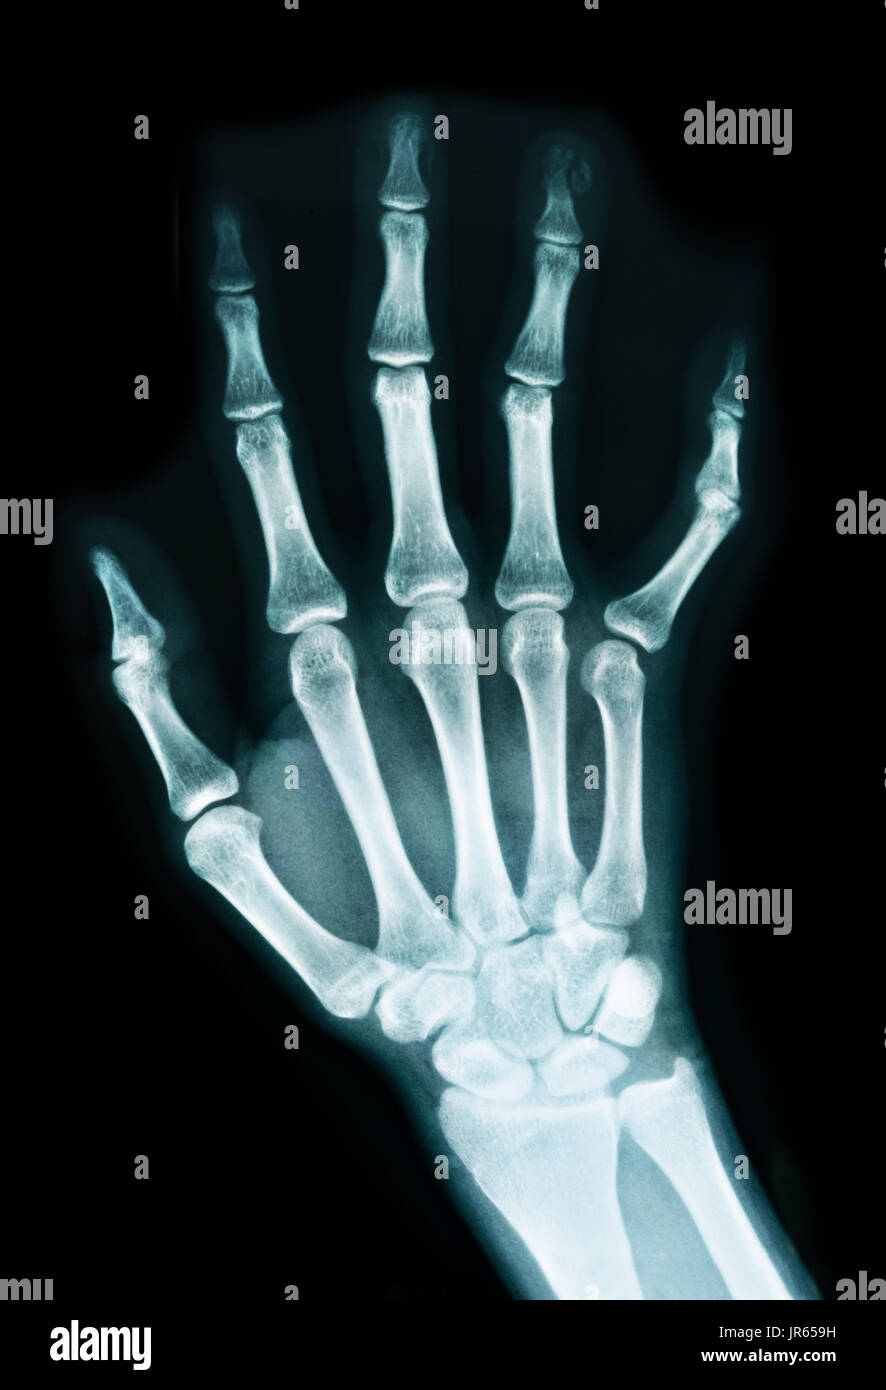 Human Wrist Anatomy Xray View Stock Photos & Human Wrist Anatomy ...